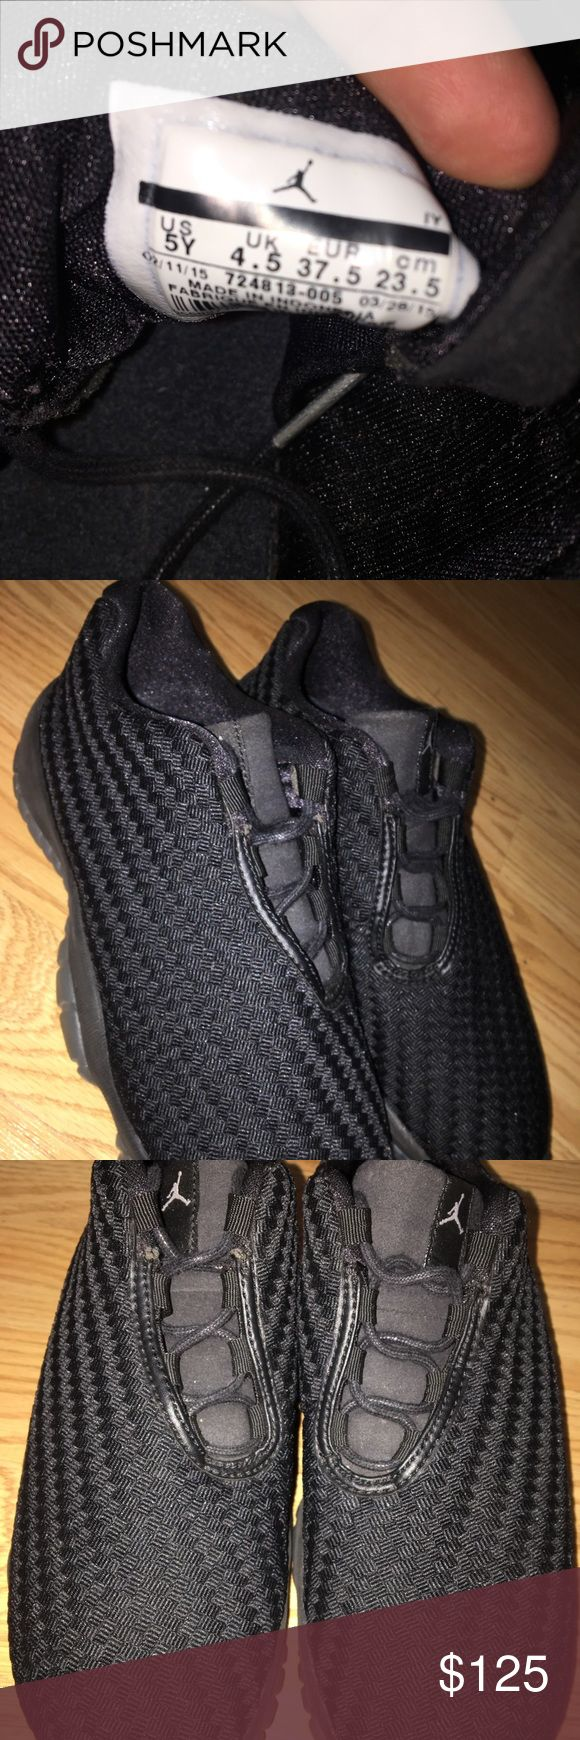 JORDAN FUTURE LOW SNEAKERS Worn a couple of time. In amazing condition. These are sold out everywhere. Air Jordan Shoes Sneakers